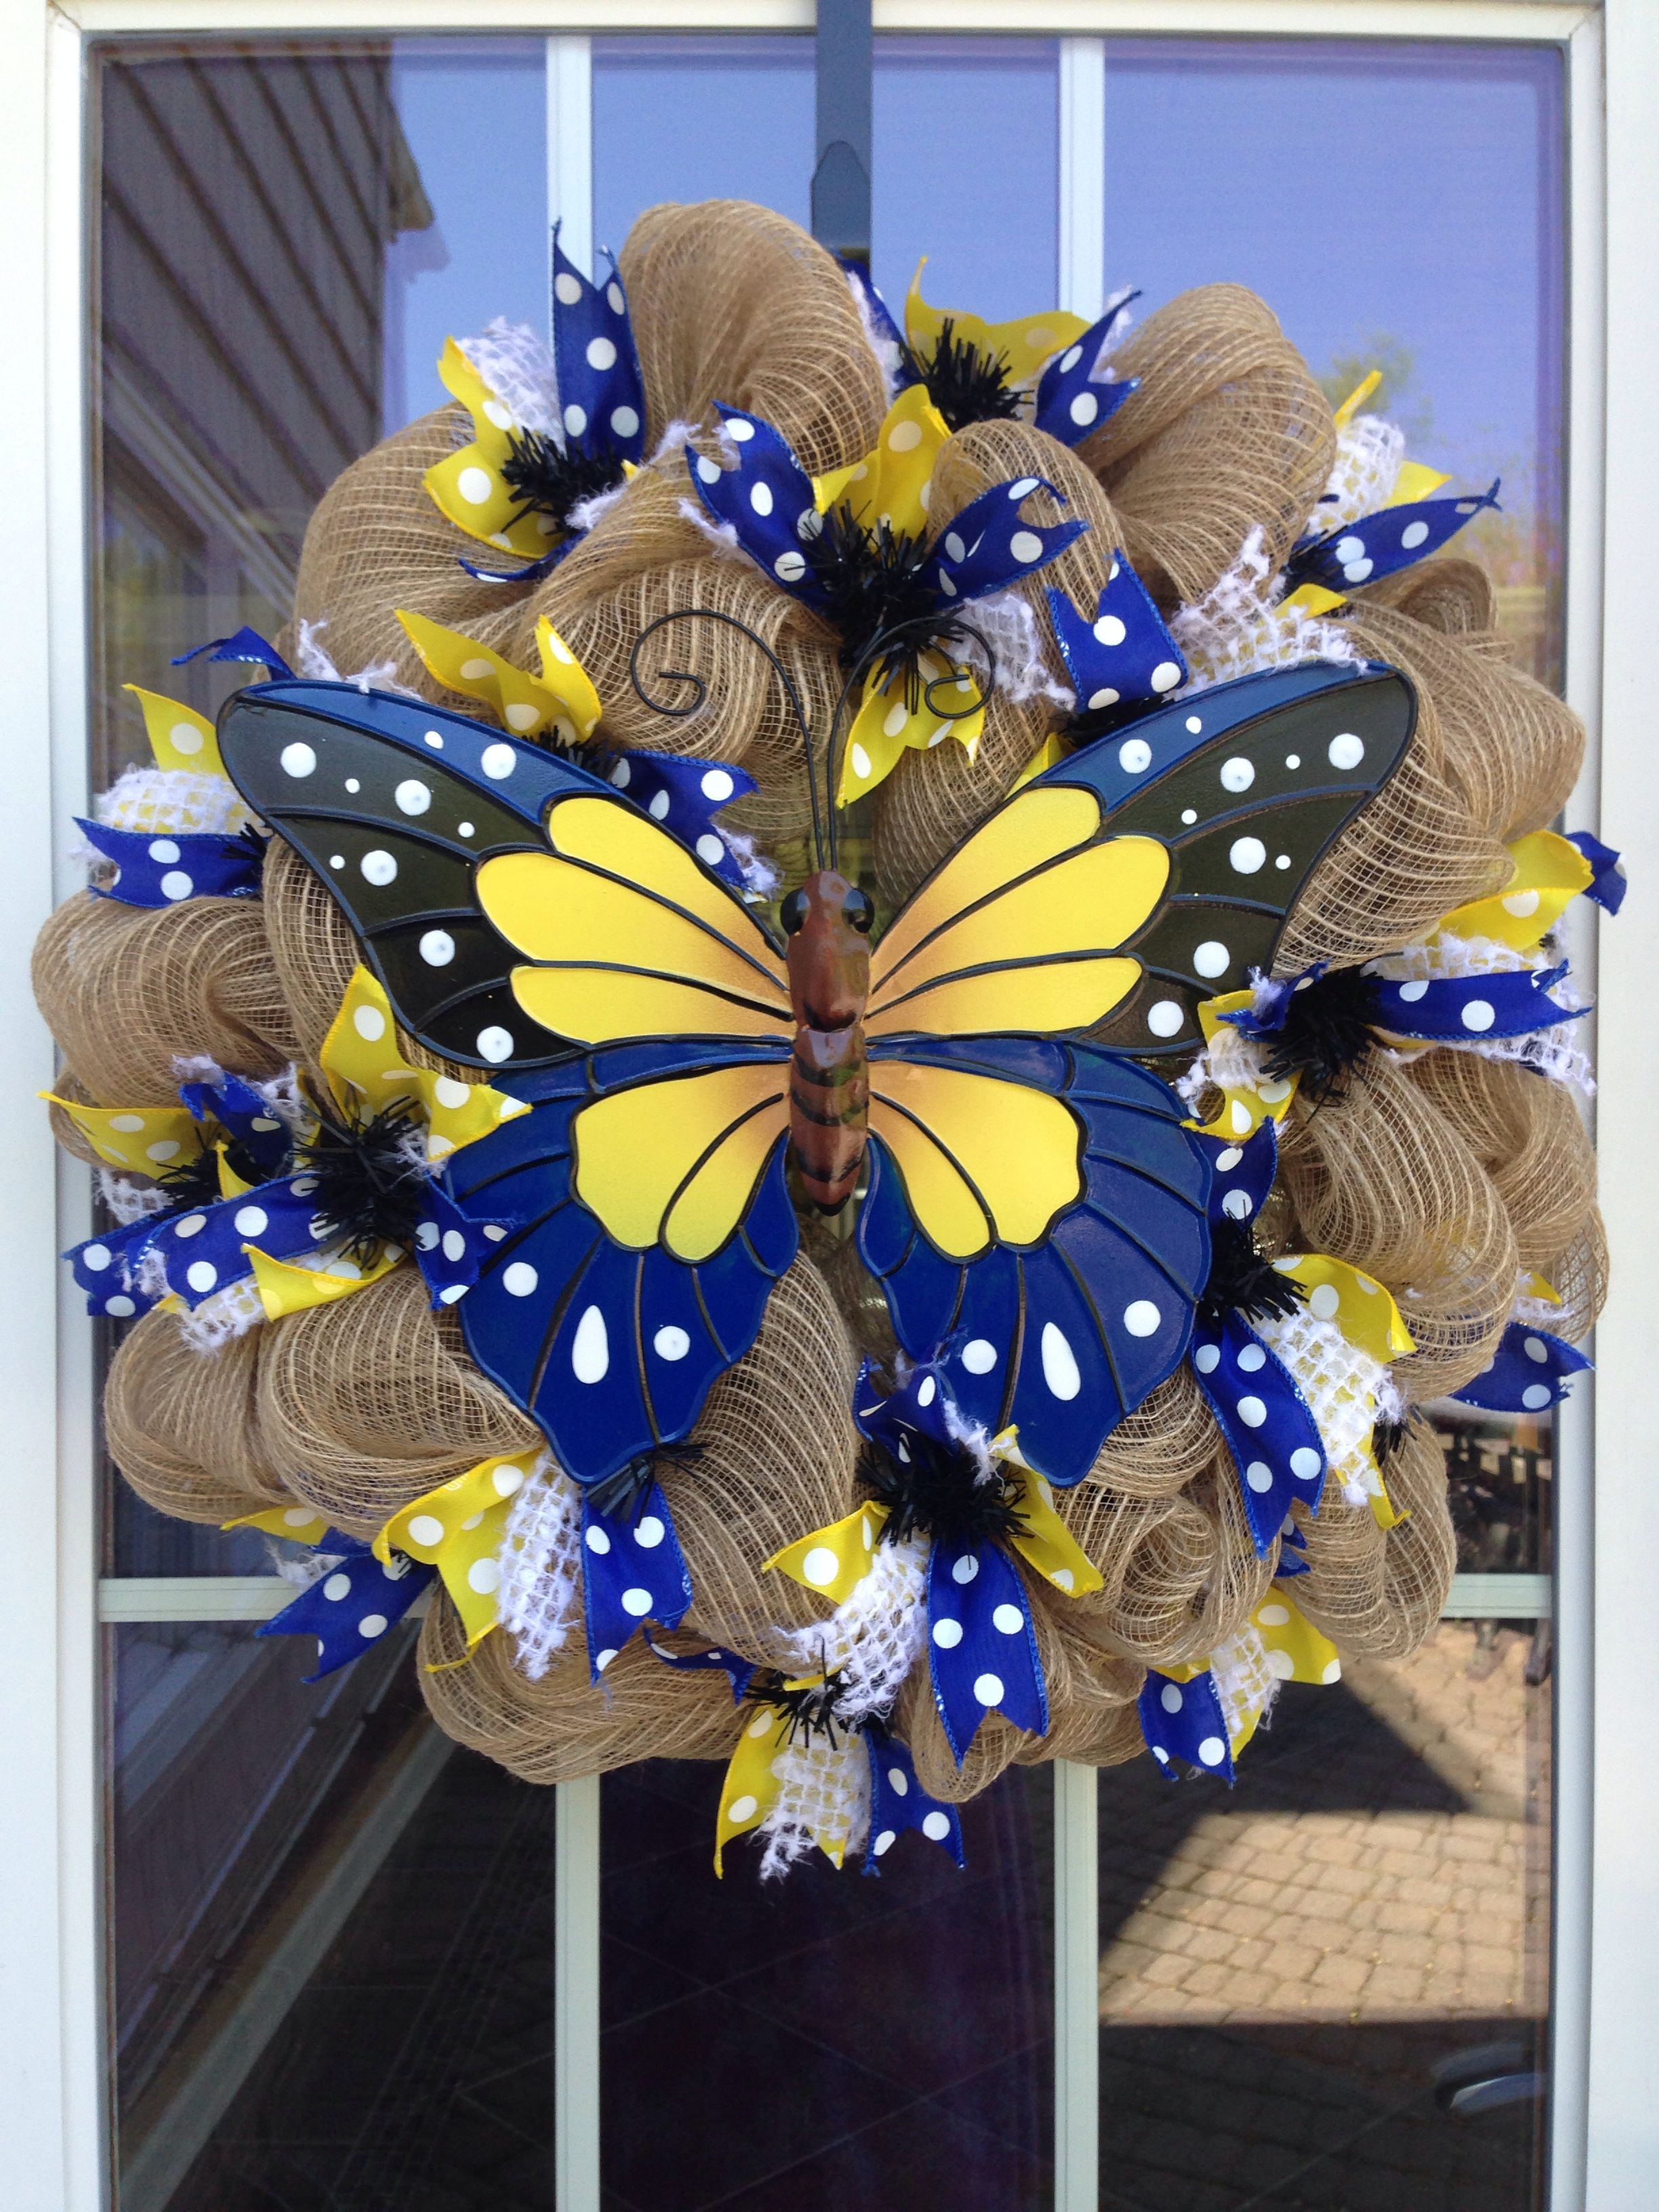 Pin By Isabelle Sirls On Wreaths Wreaths Wreath Crafts